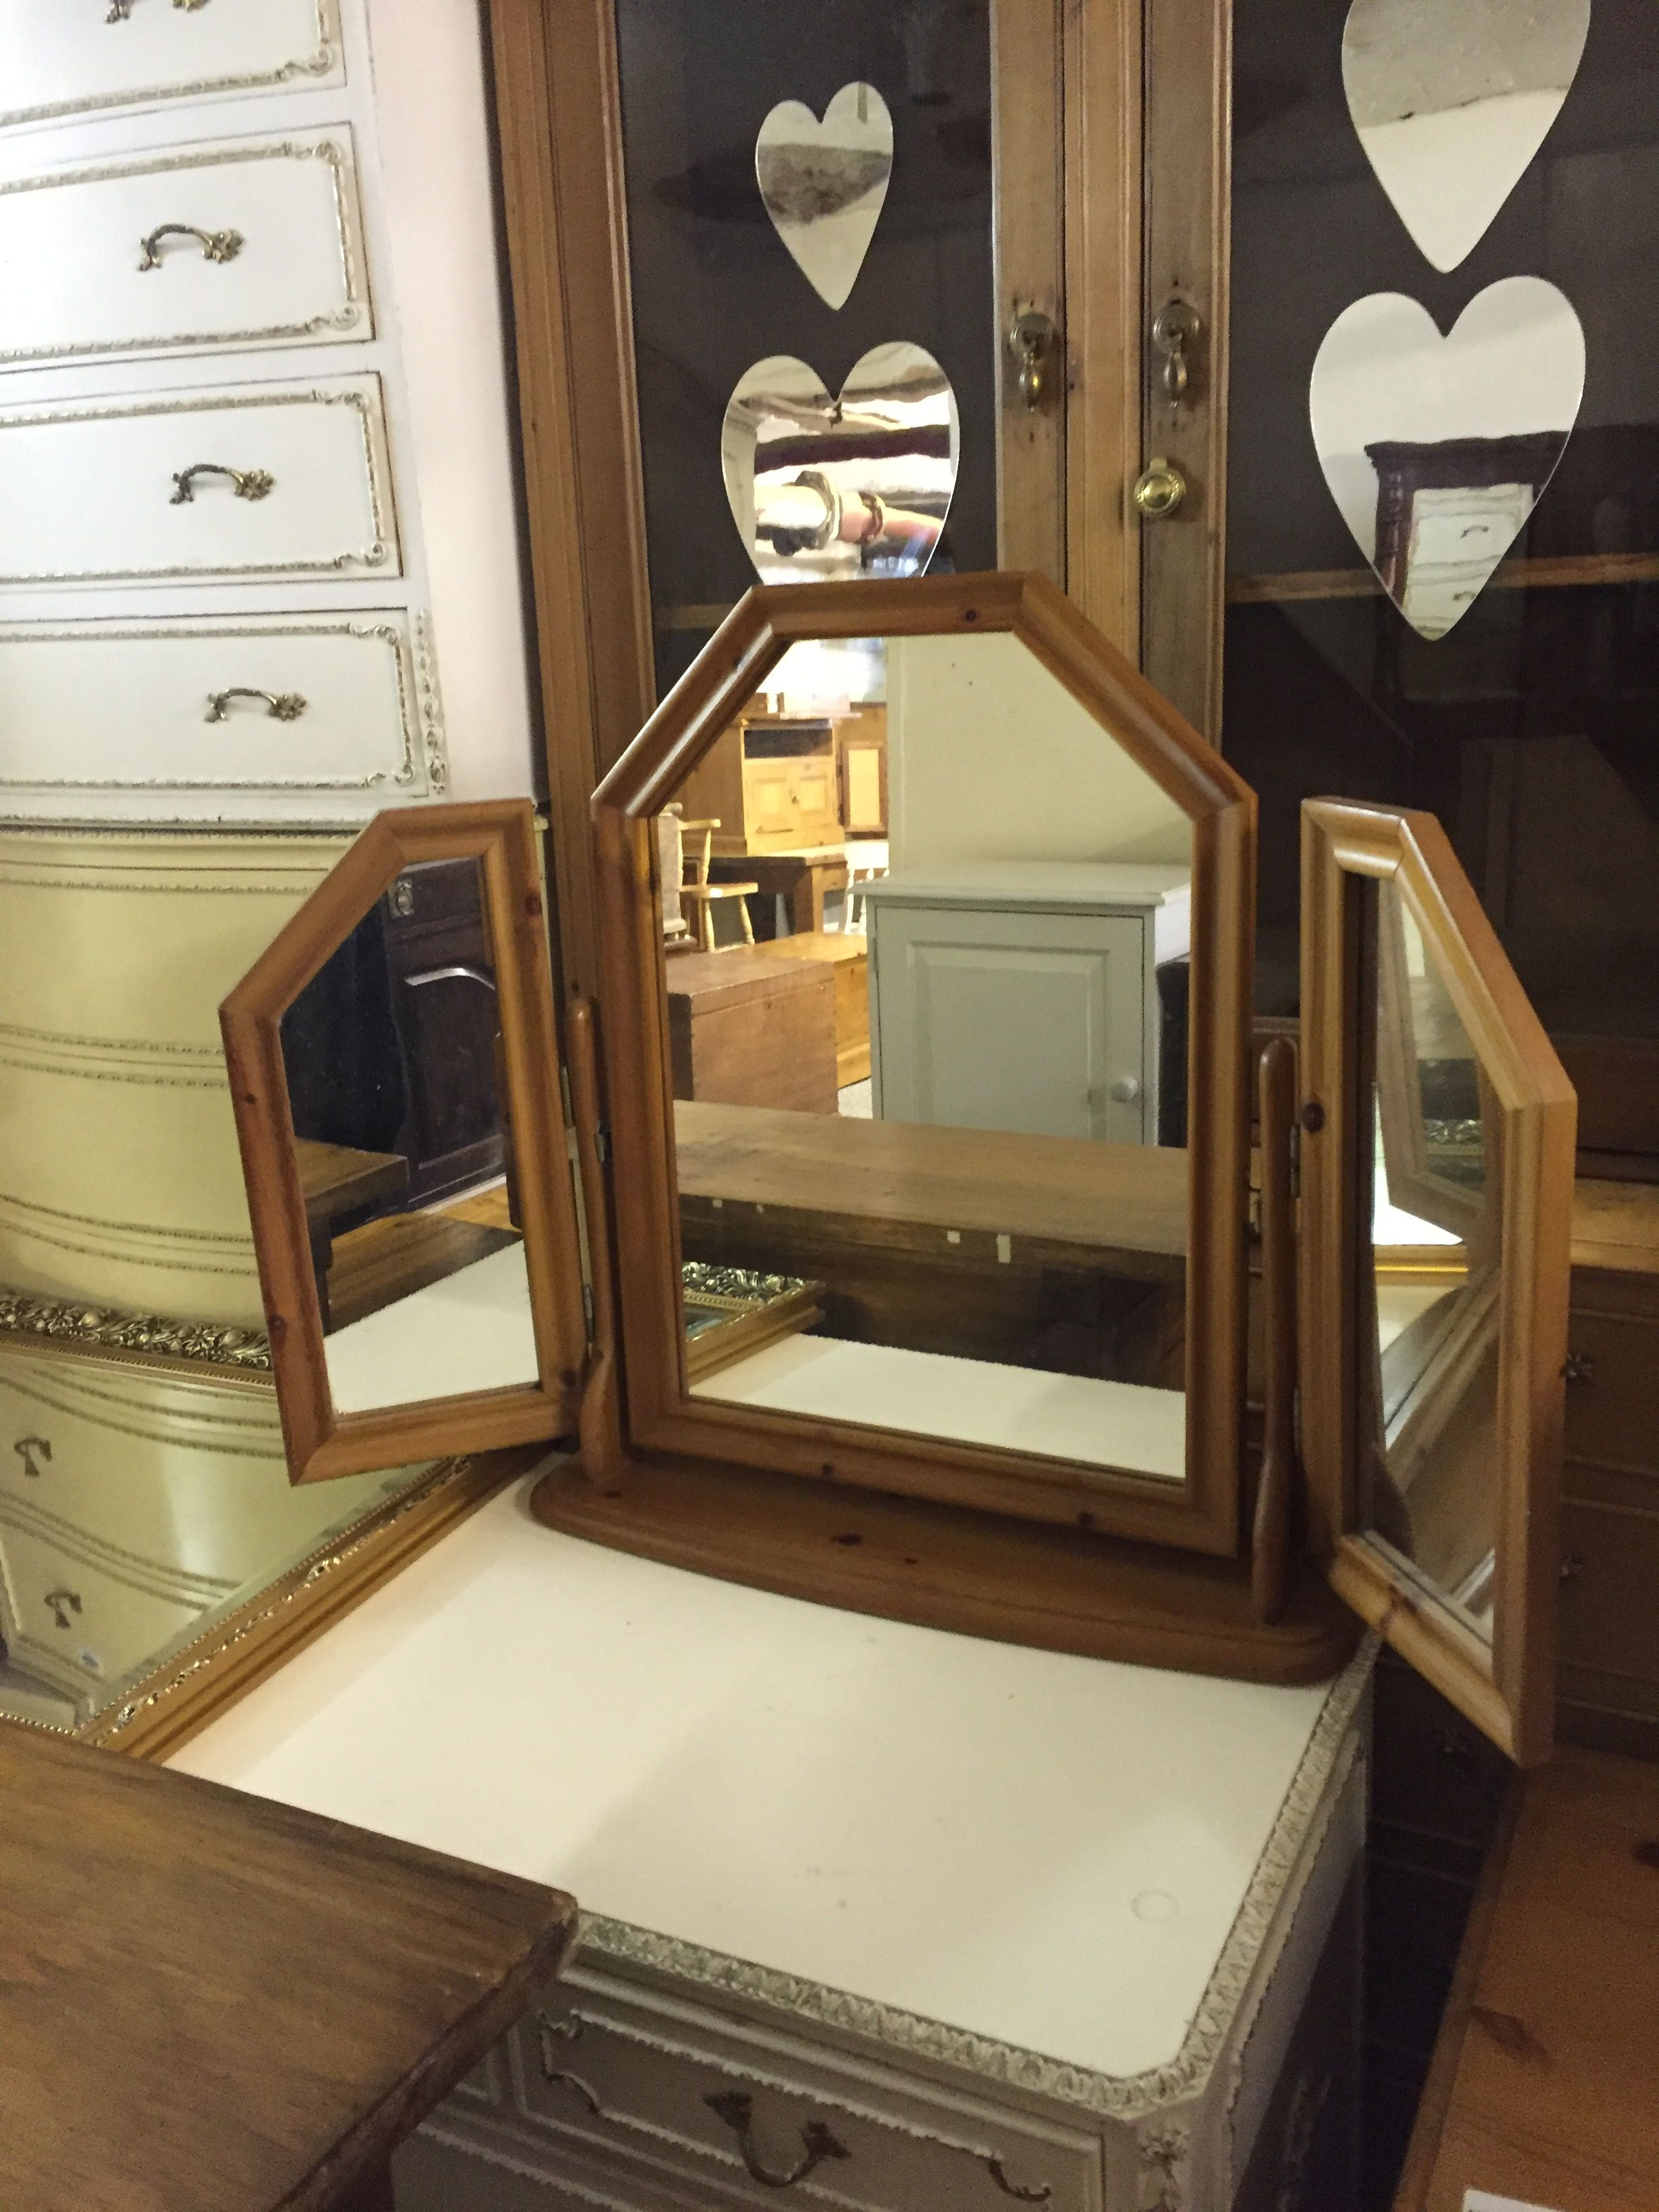 Dressing table mirrors with lights small pine triple dressing table mirror  mirrors  pinterest